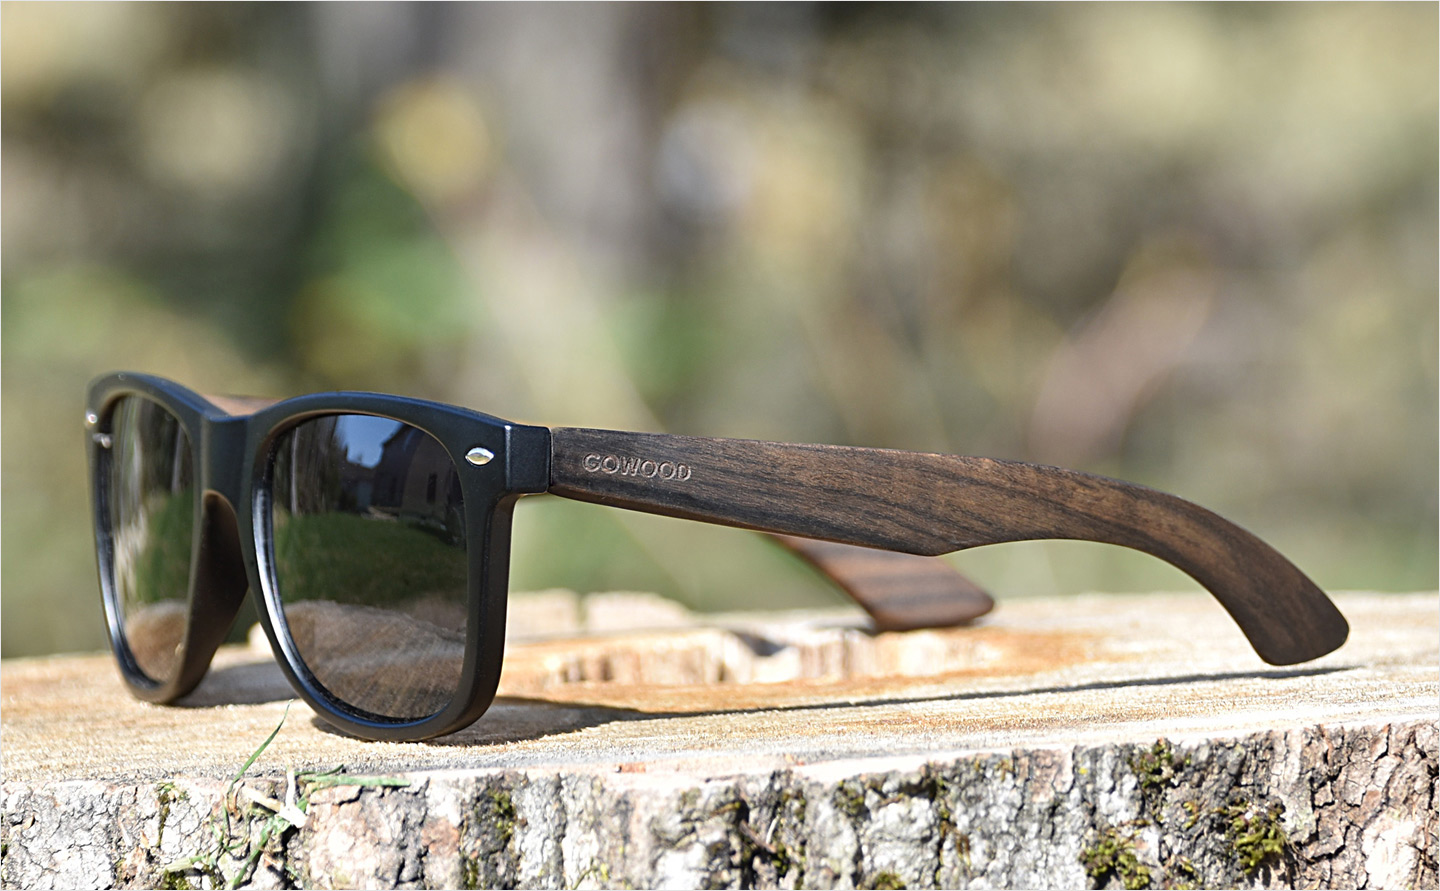 Ebony wood sunglasses with black polarized lenses